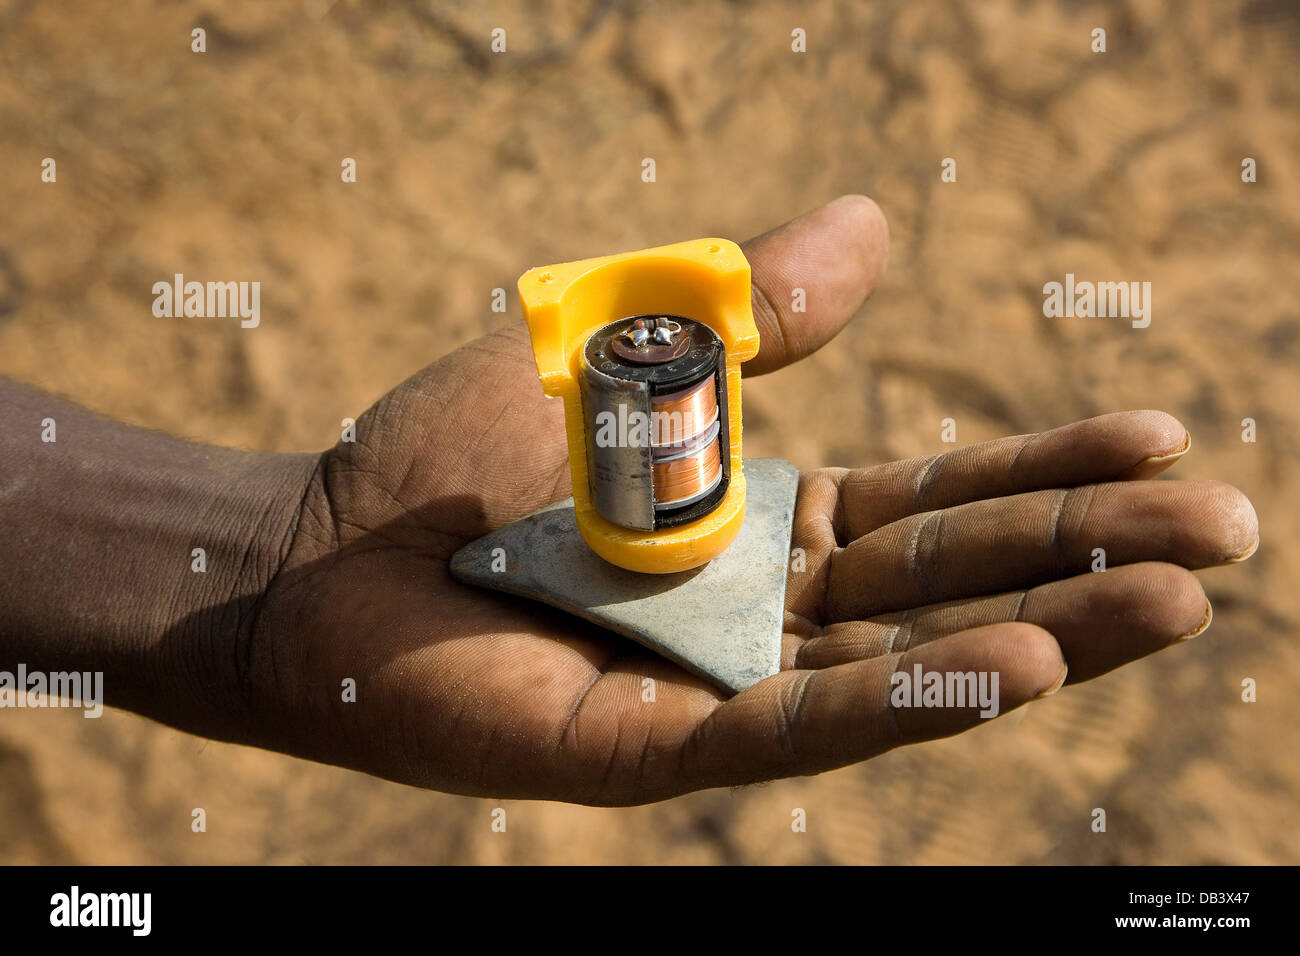 Cutaway of seismic geophone on the hand of Malian crewman to show detail and tripod base, Mali, West Africa - Stock Image